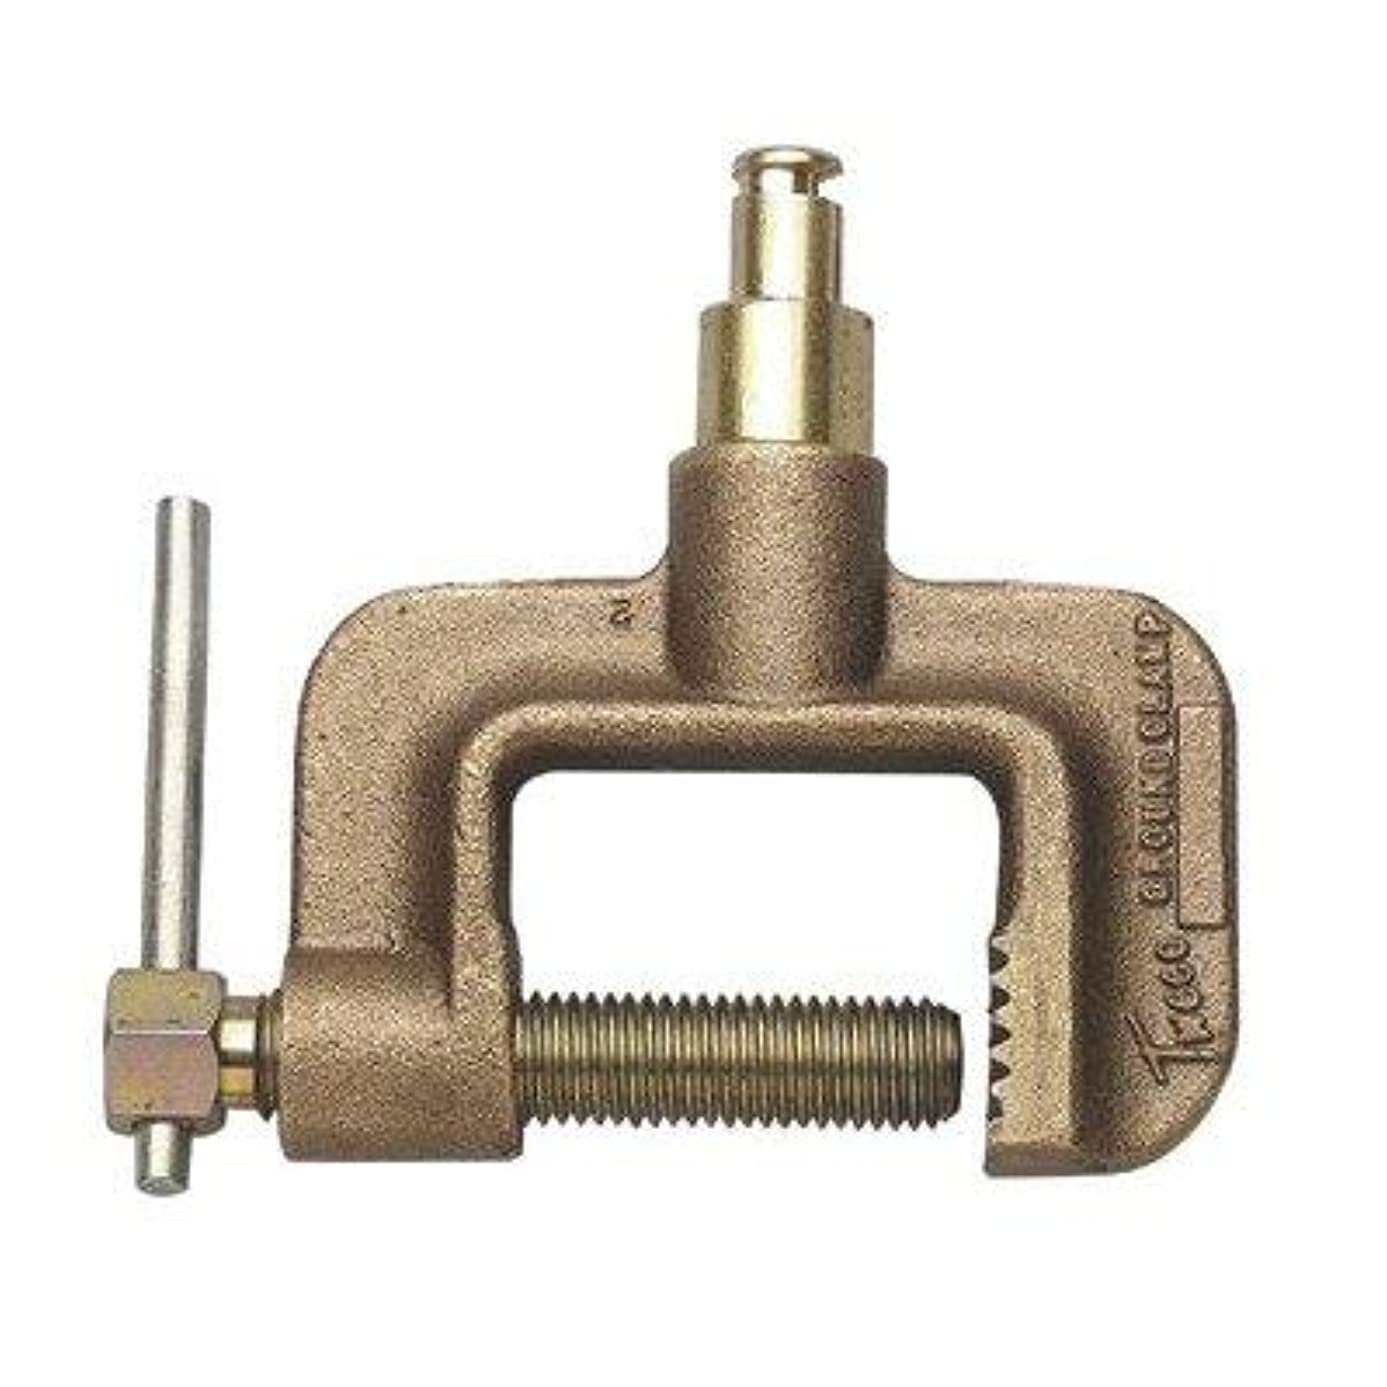 あいまいなカバールーチンGC-600-TMP 600 Amp C-Clamp Style Ground Clamp With Tweco? Male Plug [並行輸入品]